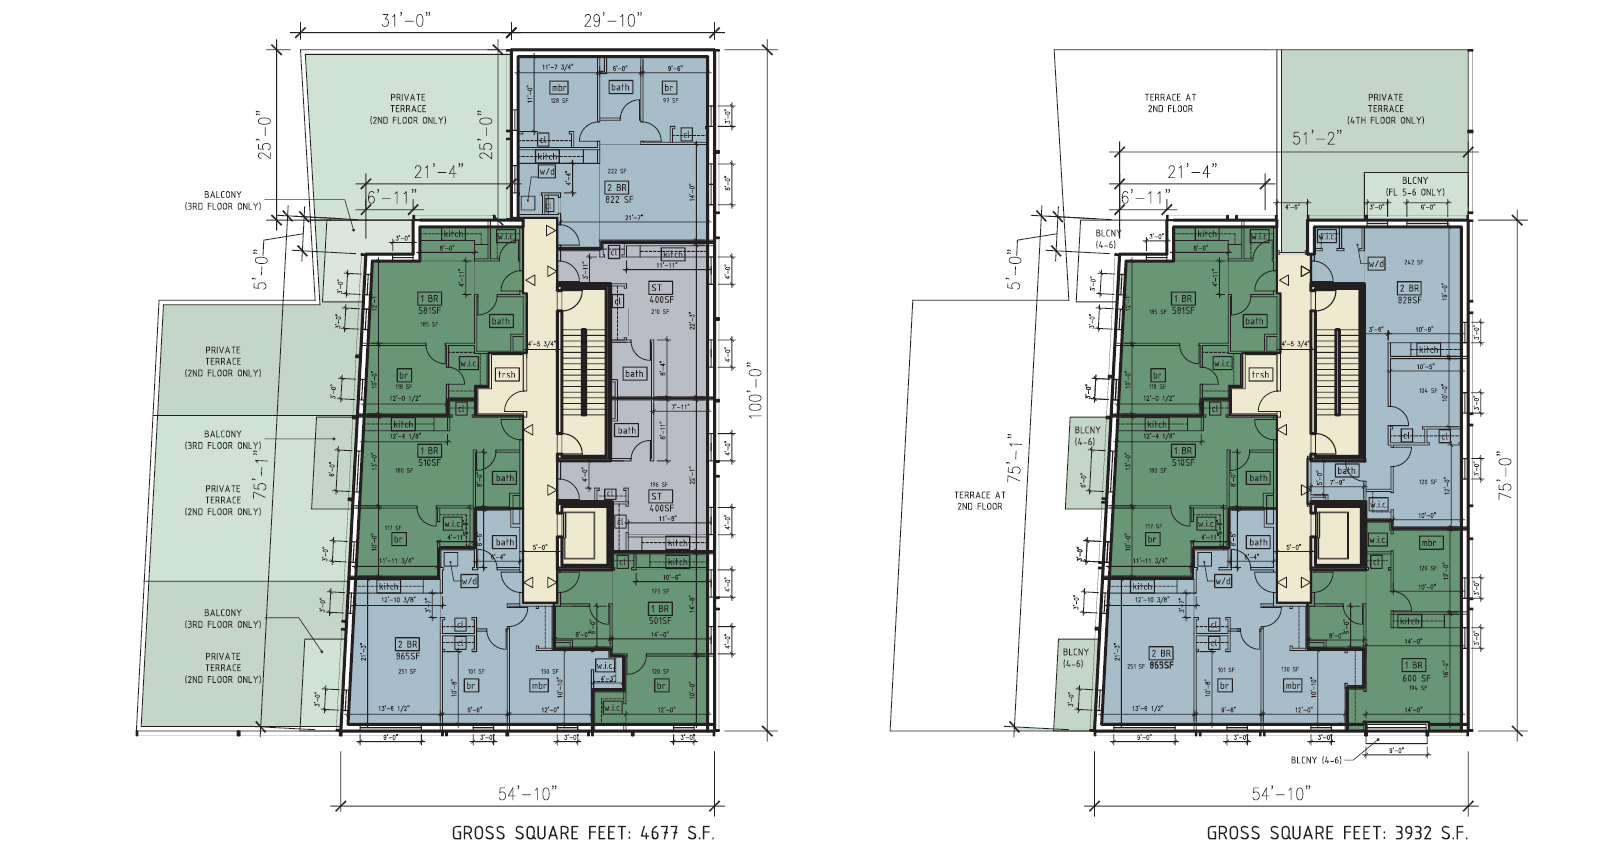 25-11 38th Avenue floor plan – typical floor (left) and top floor (right). Drawing by RSVP Studio, dated November 2013, publicly available via the Remedial Investigation Report.